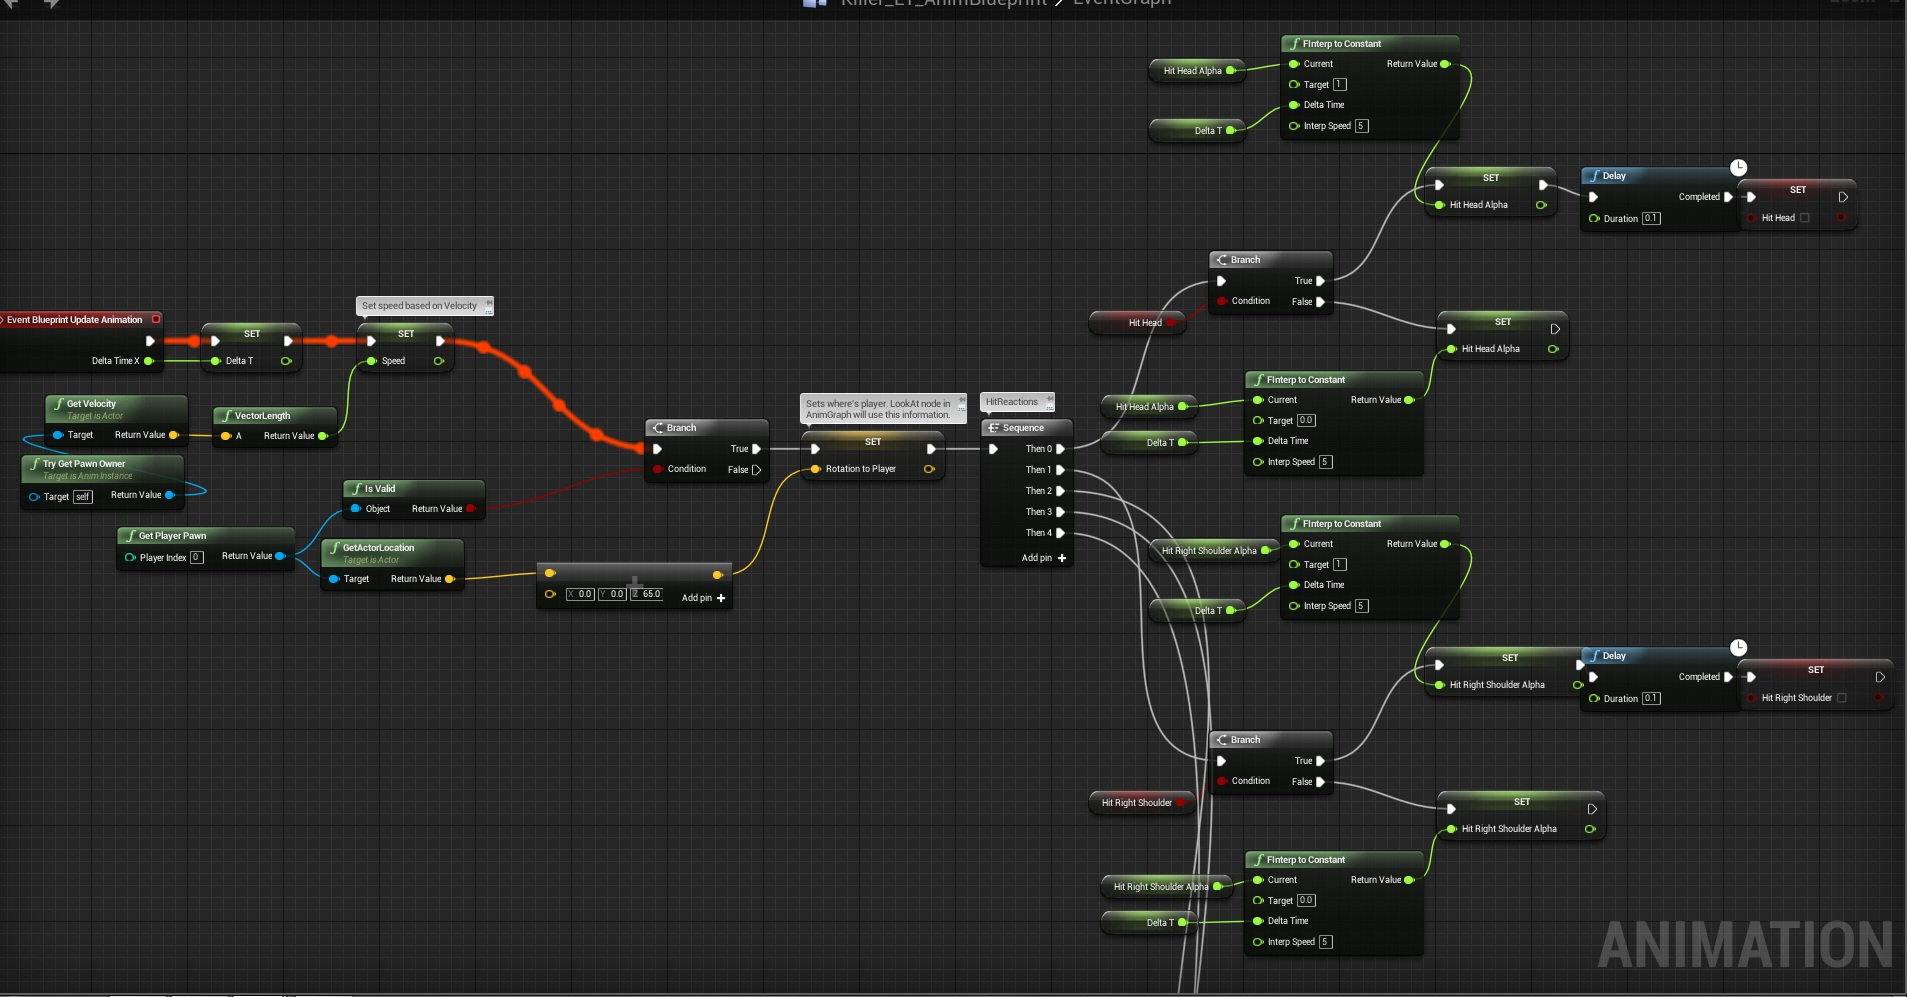 First enemy behavior tree shooting at player shooter tutorial animbp malvernweather Choice Image